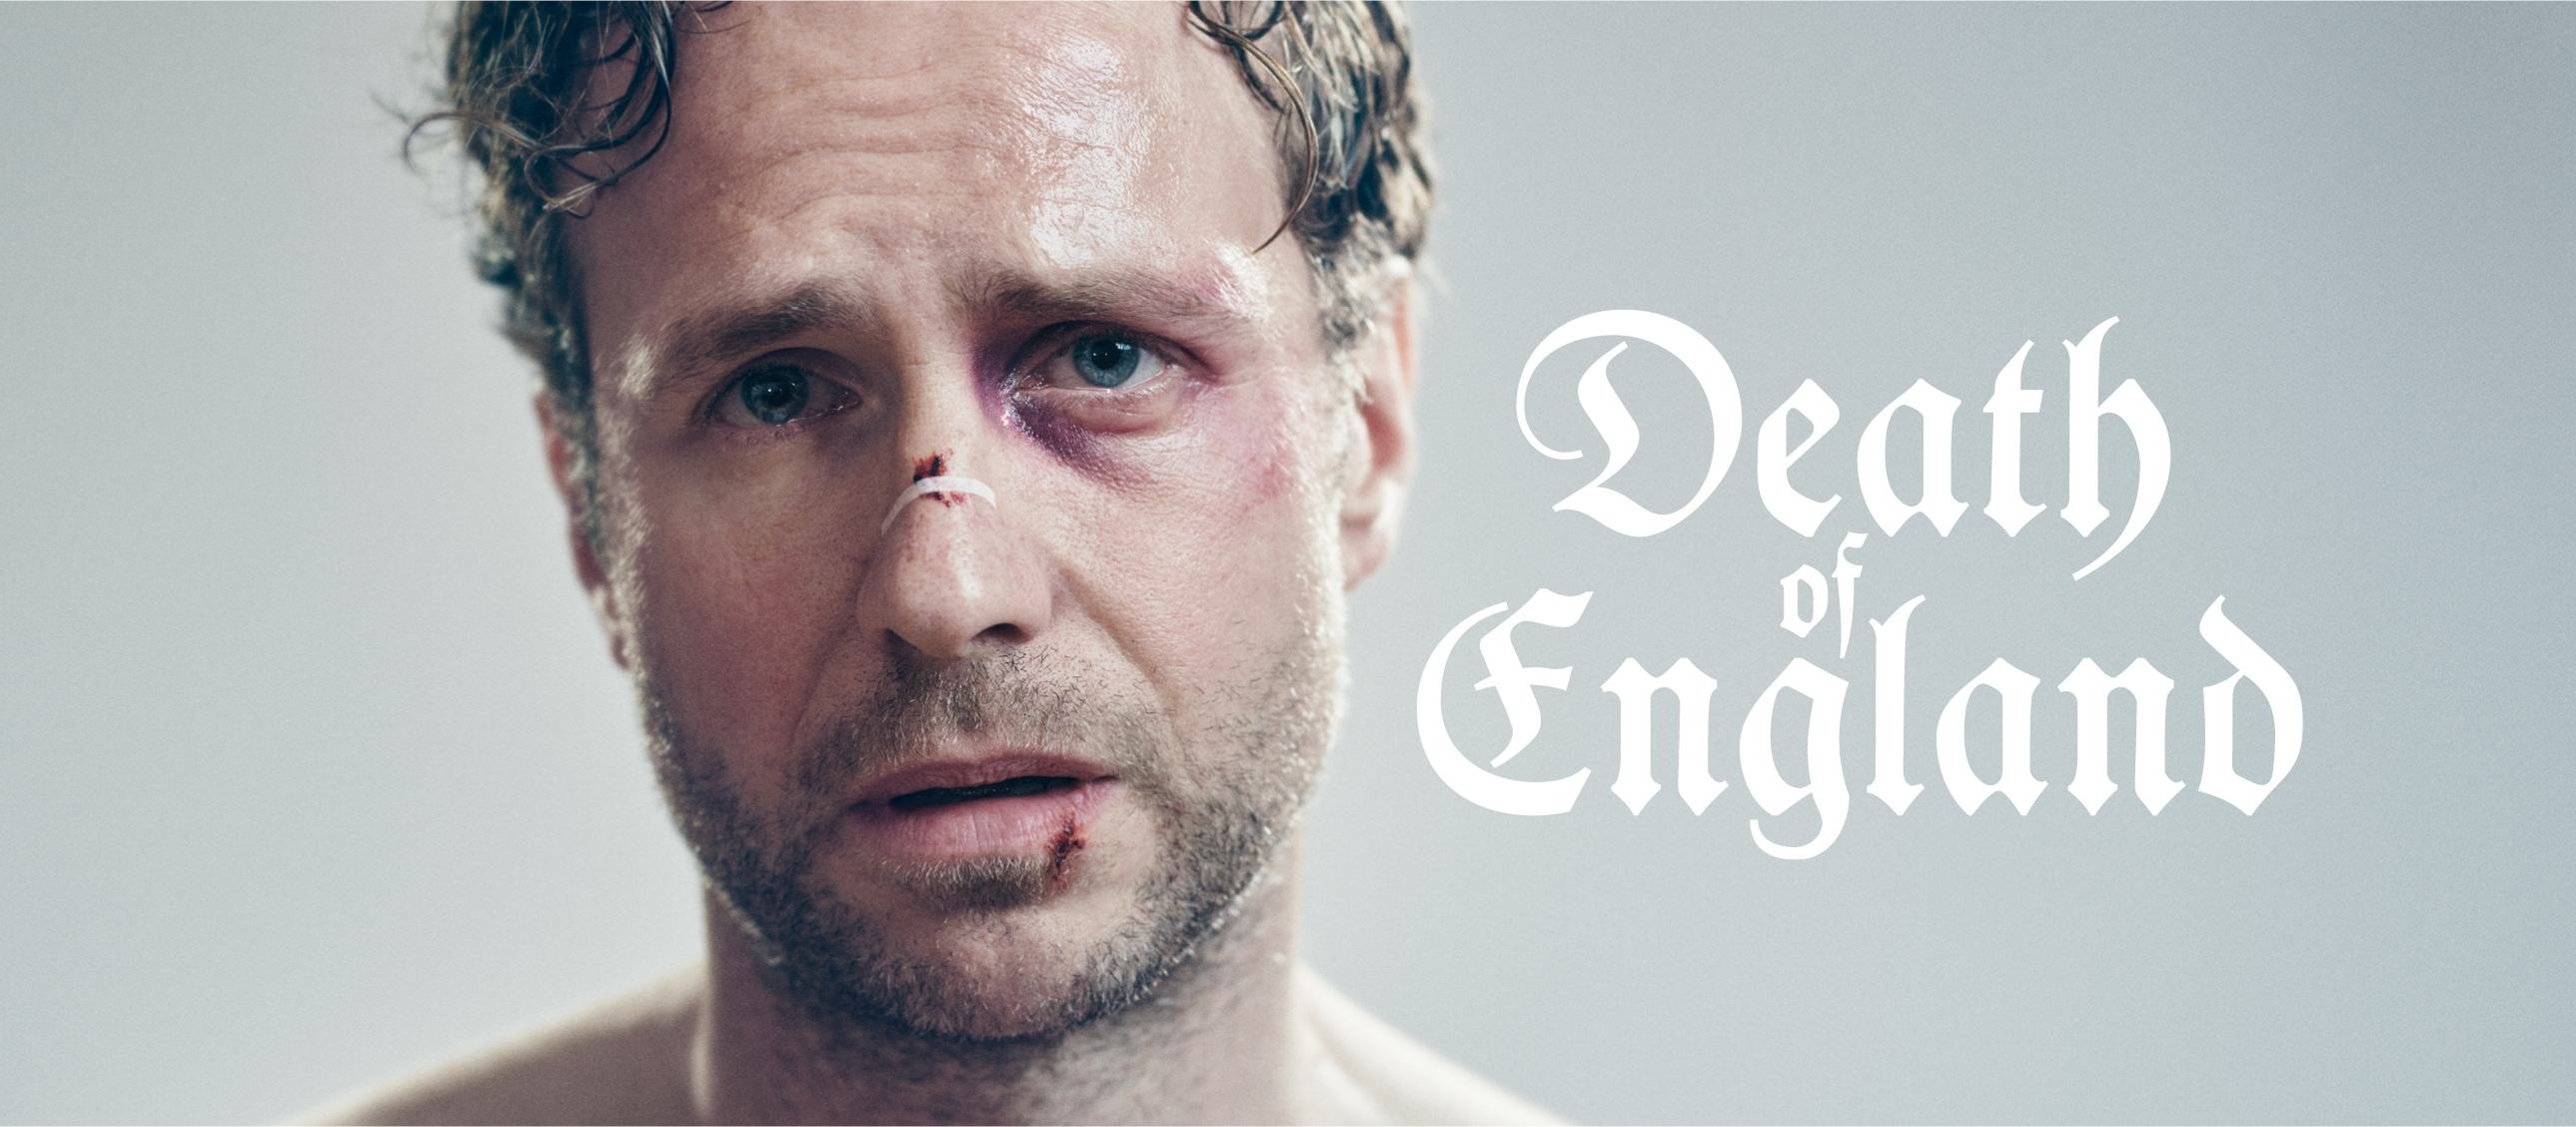 Death of England - portrait of Rafe Spall, injureded and distressed